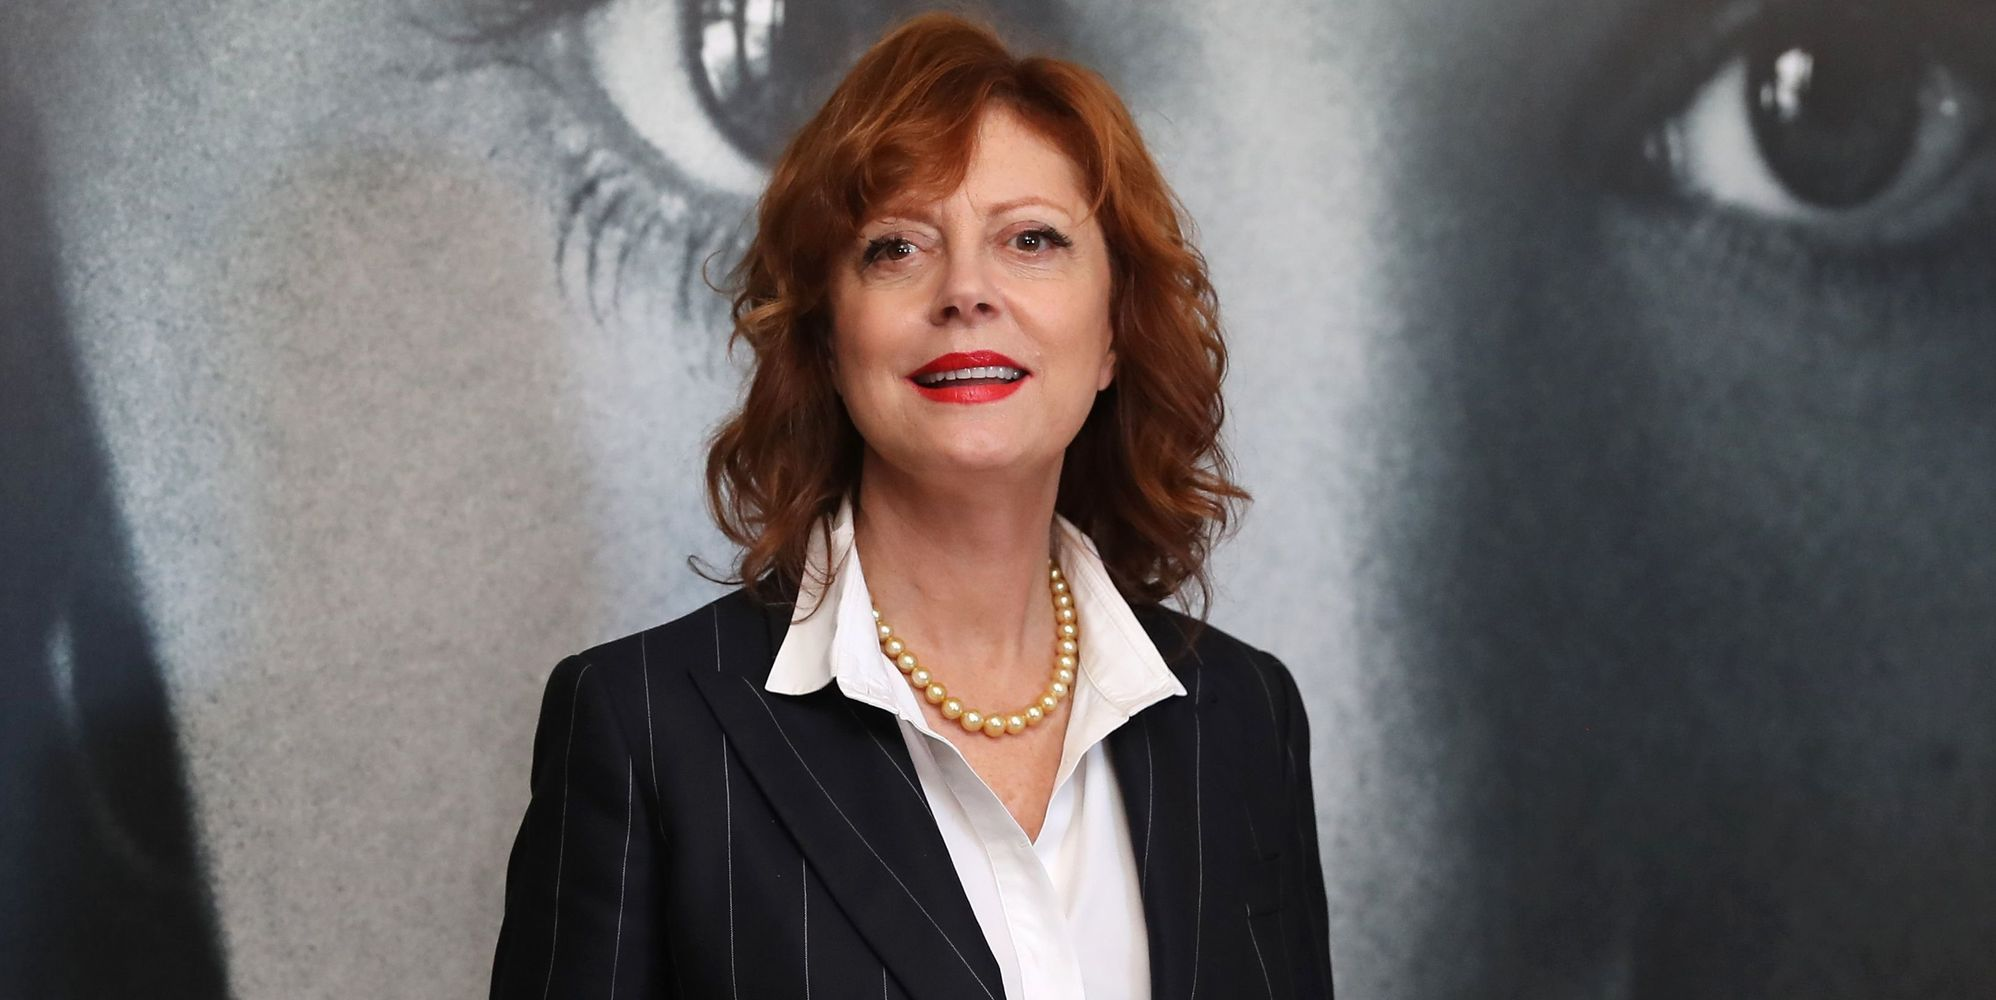 Susan Sarandon Has Absolutely 'Nothing Good To Say' About Woody Allen